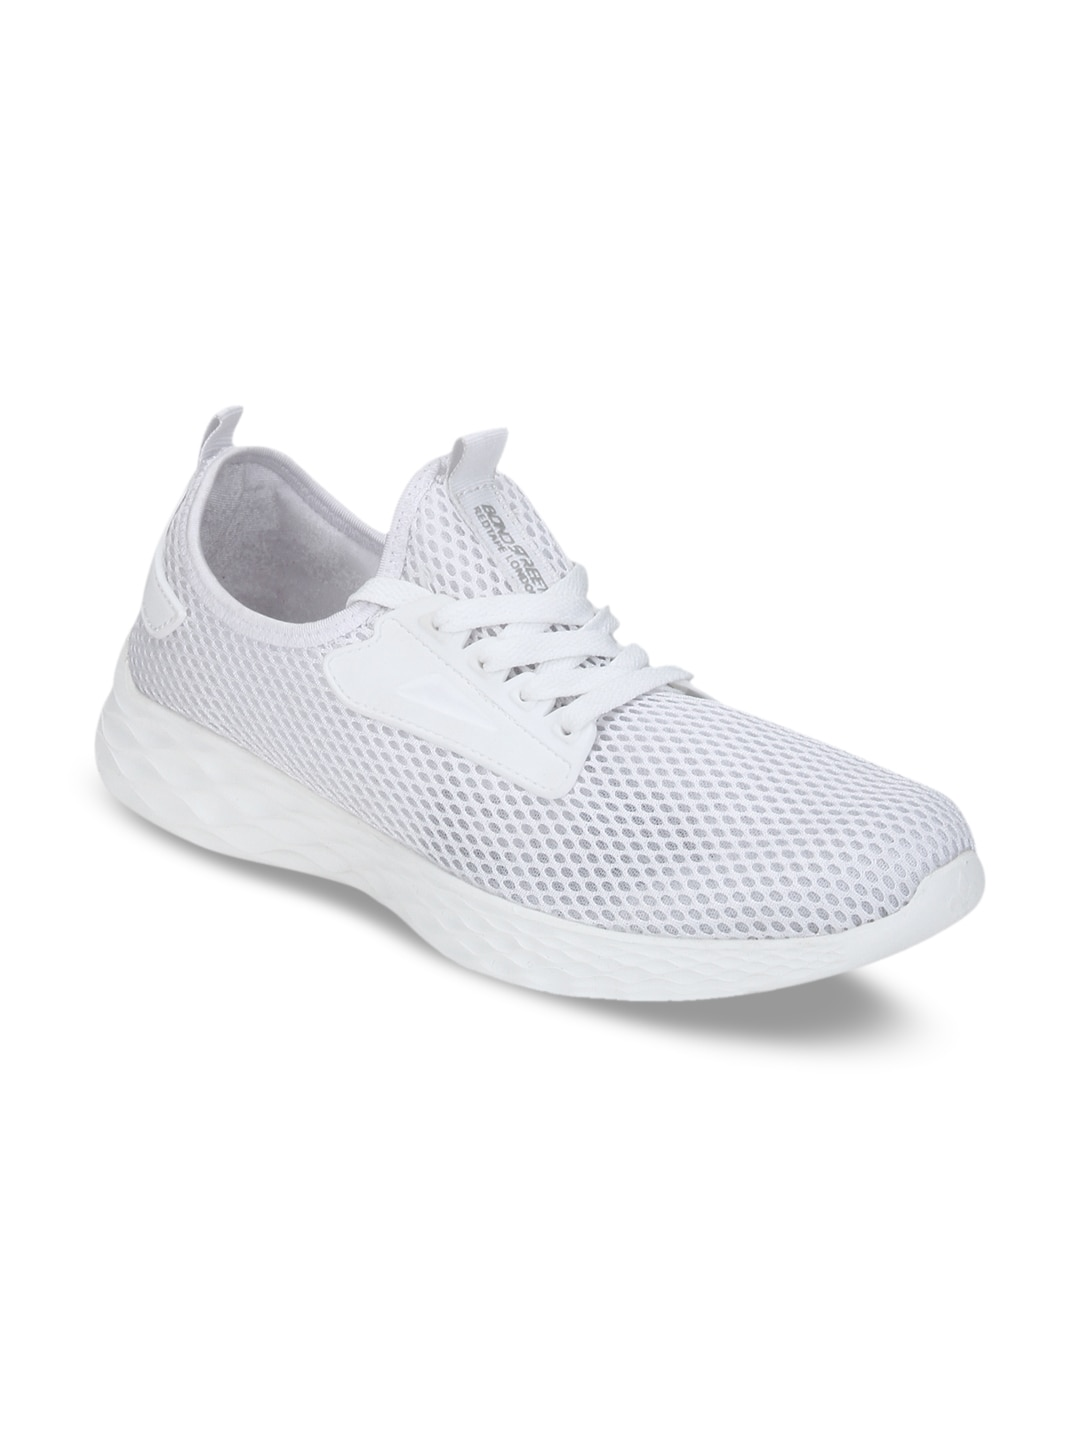 598fa22be47 Sports Shoes for Men - Buy Men Sports Shoes Online in India - Myntra